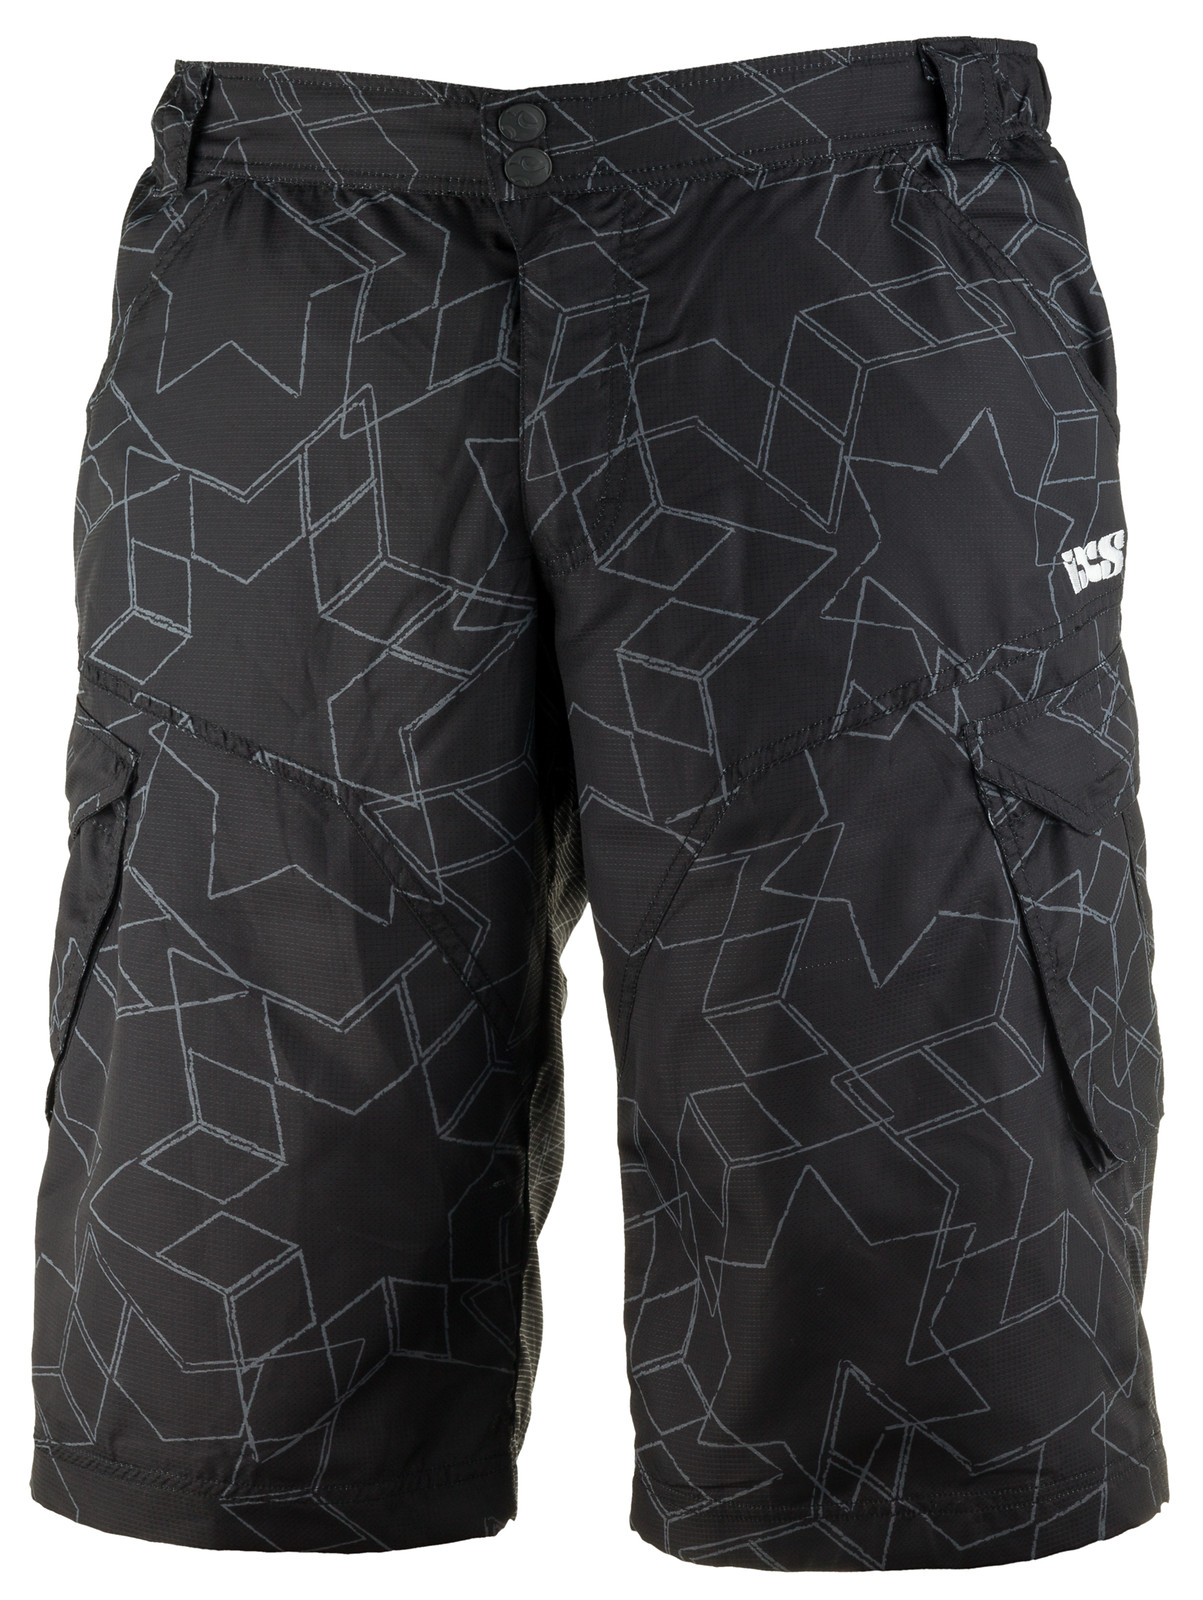 iXS Vial Riding Short vial black front